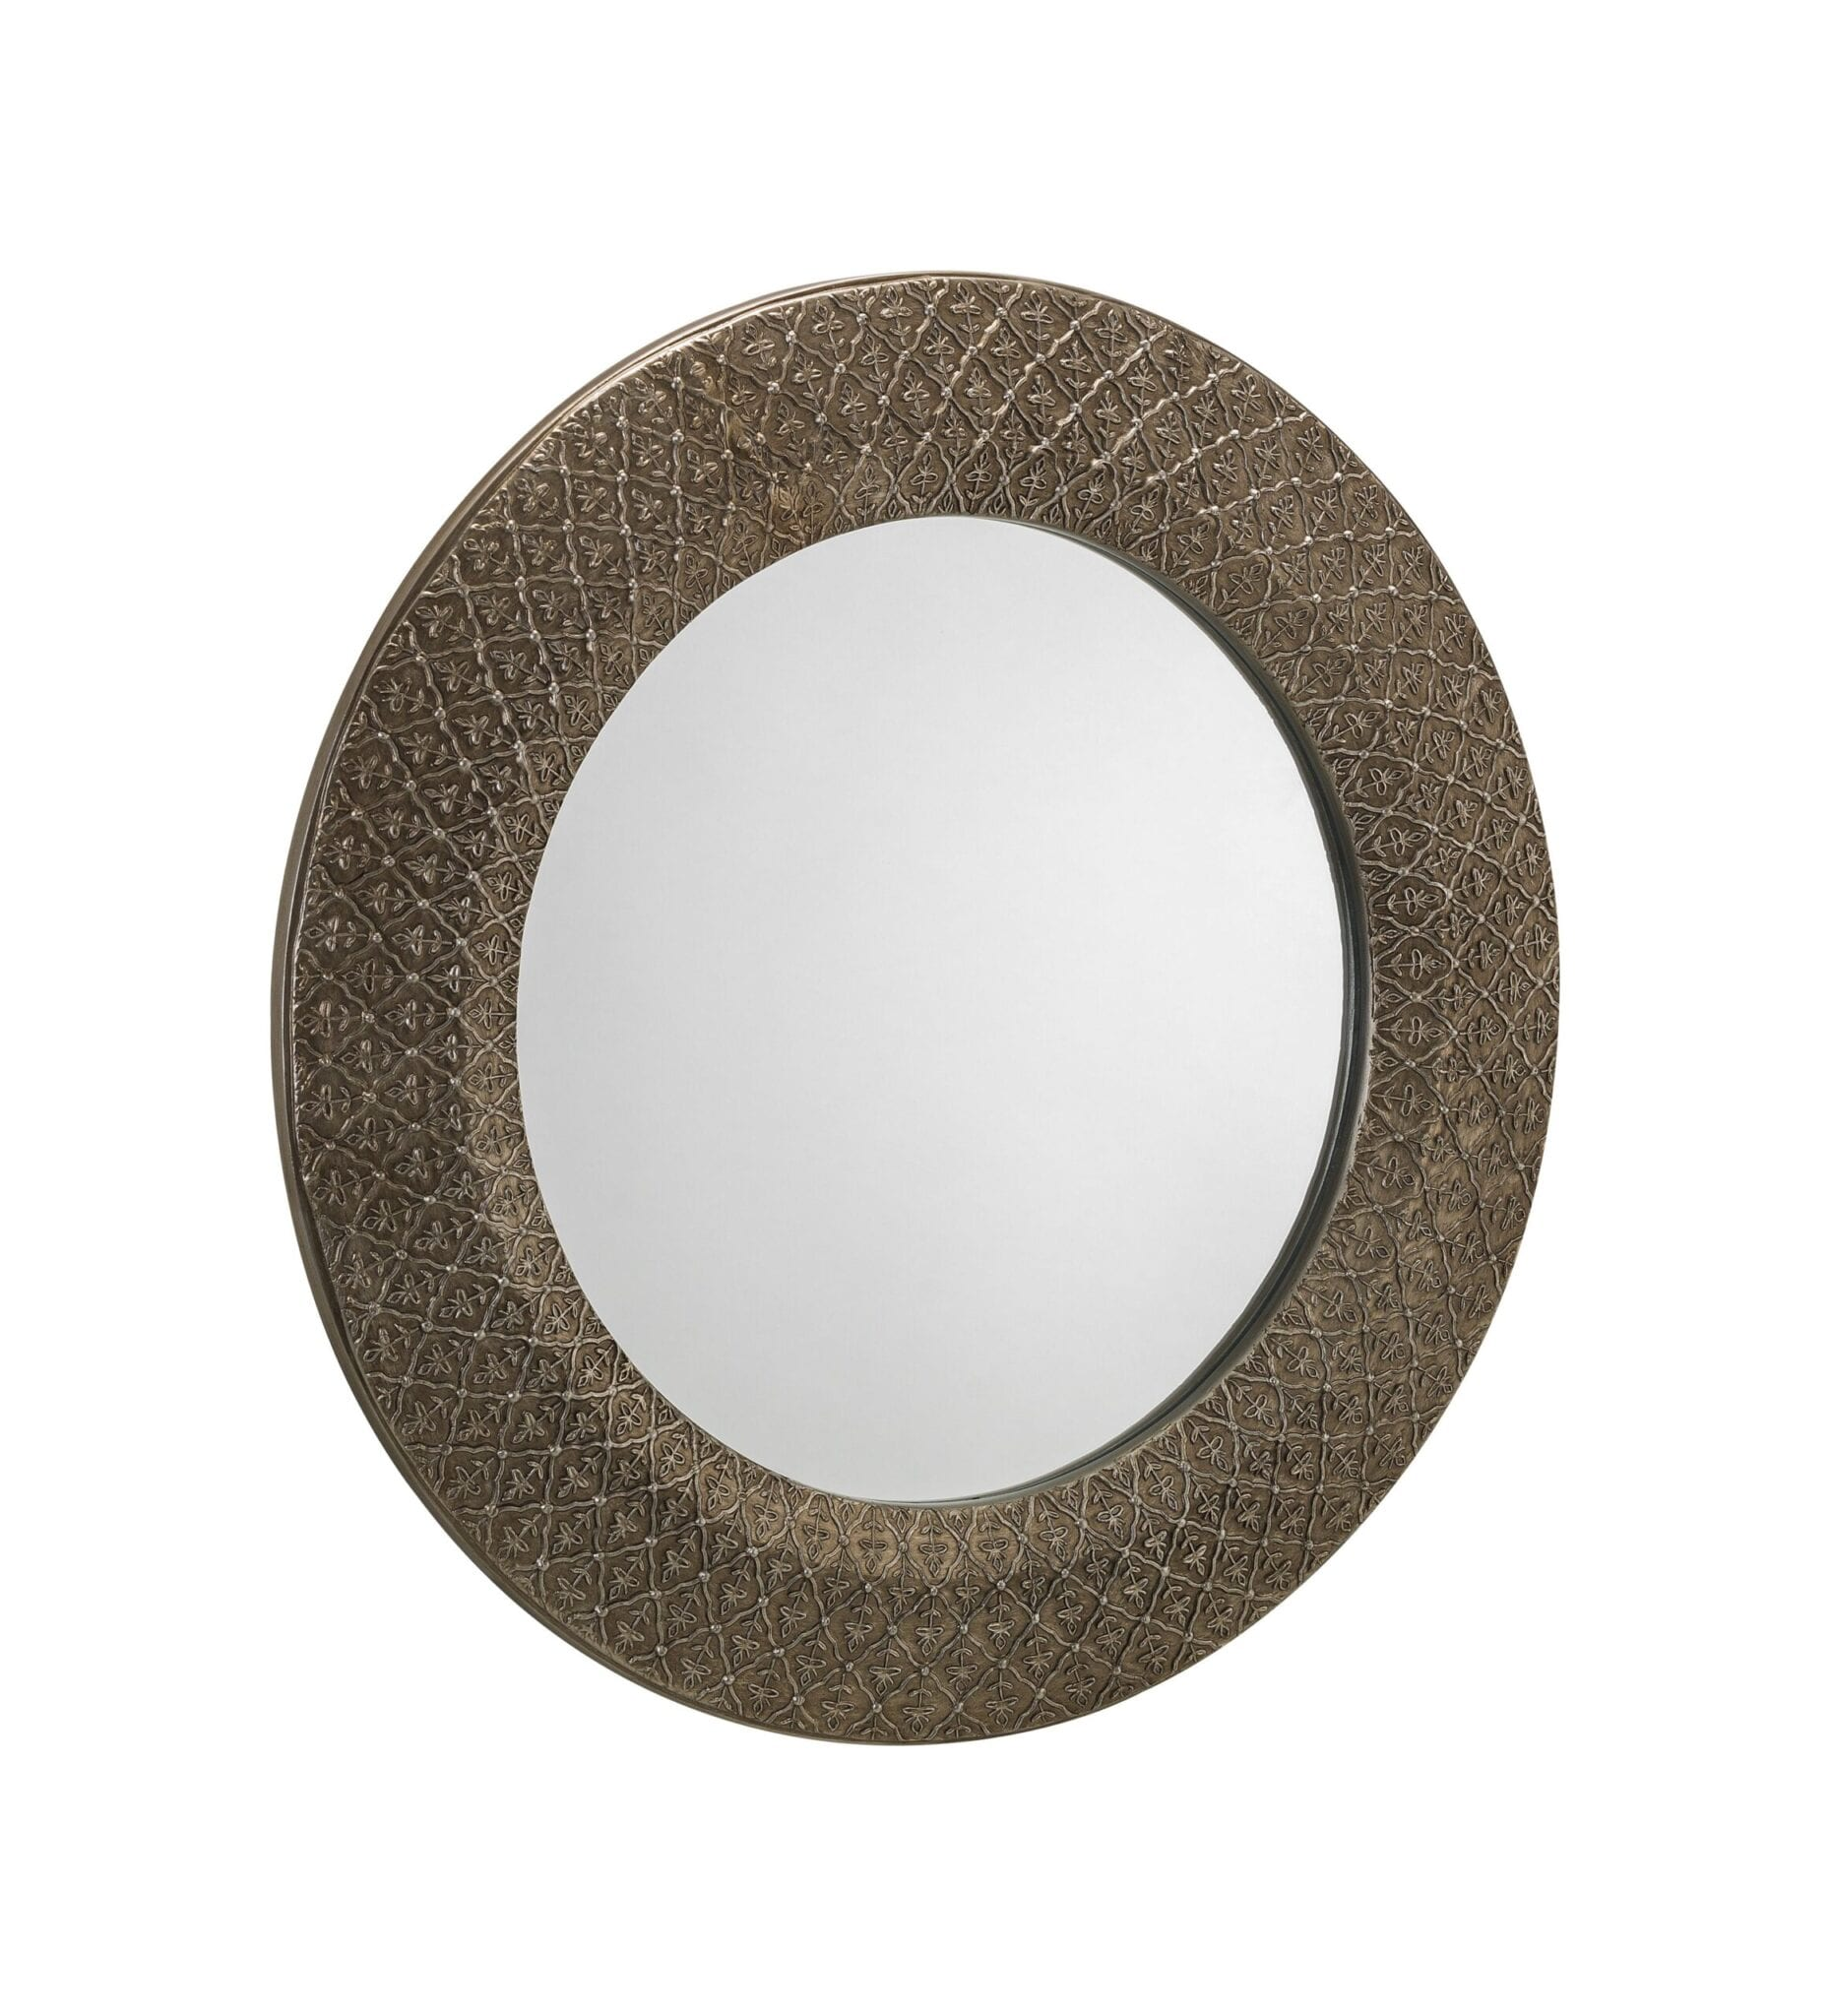 Radiance Small Round Pewter Wall Mirror